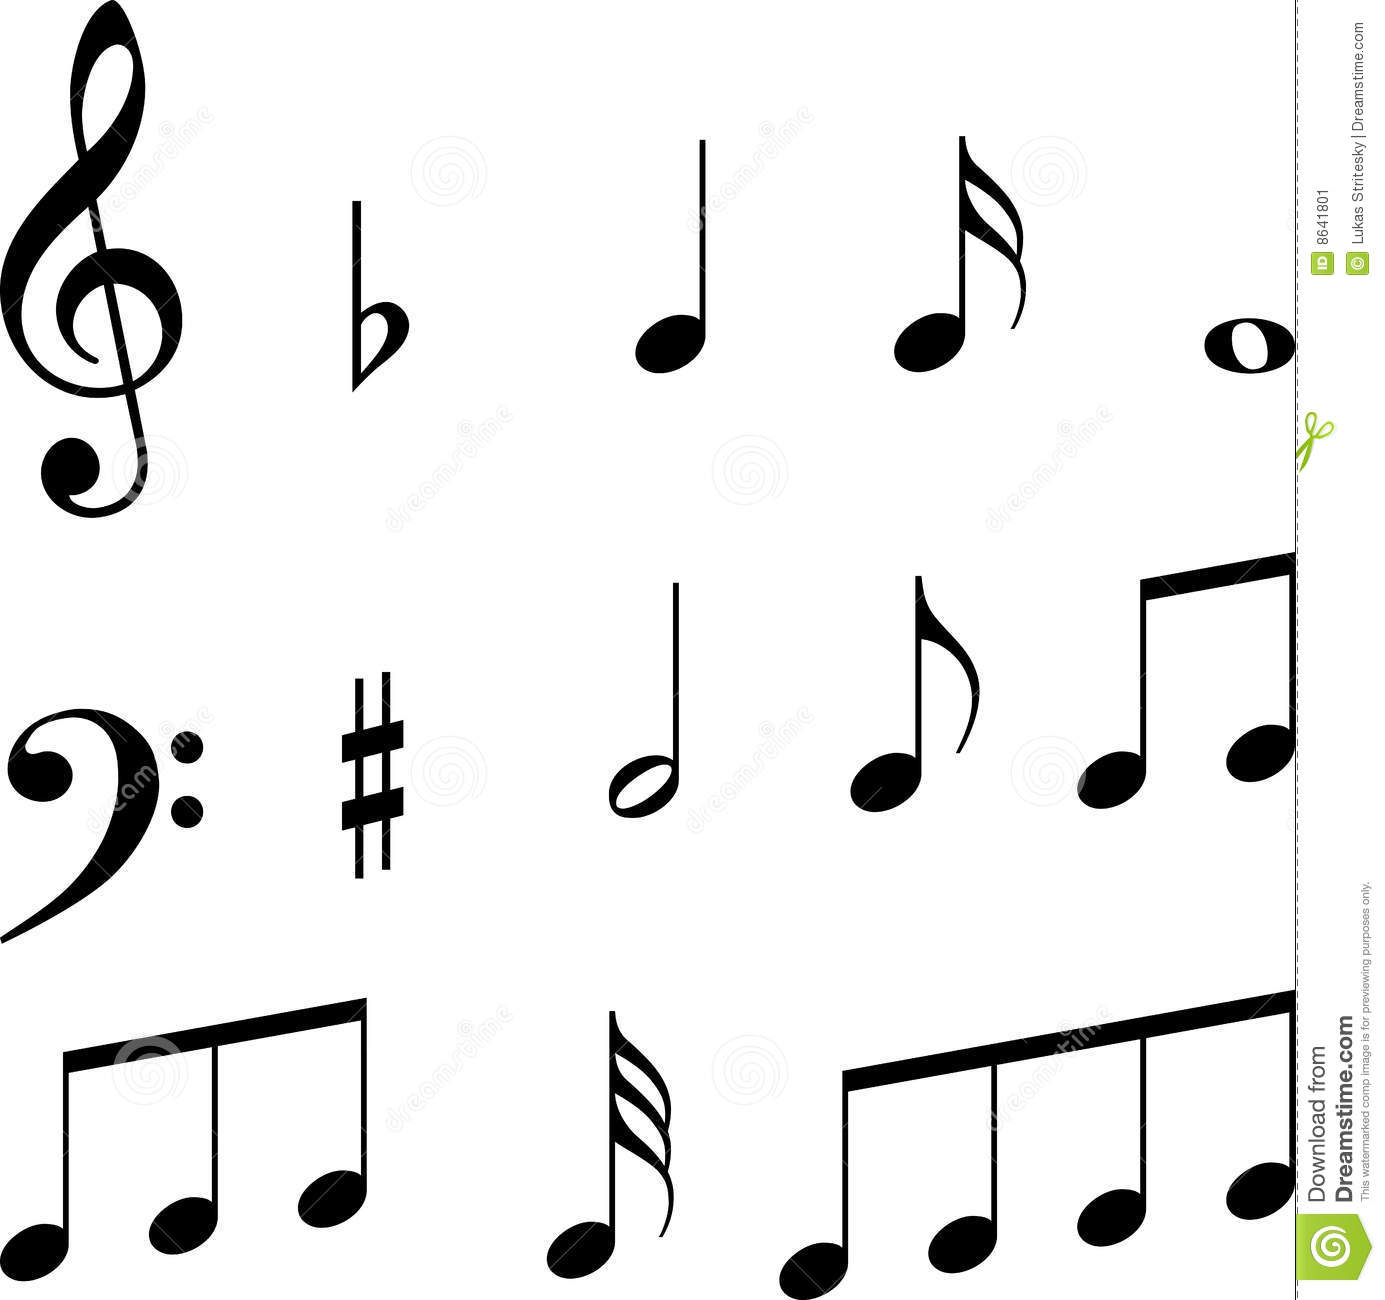 Musical notes symbols with keys (clef).